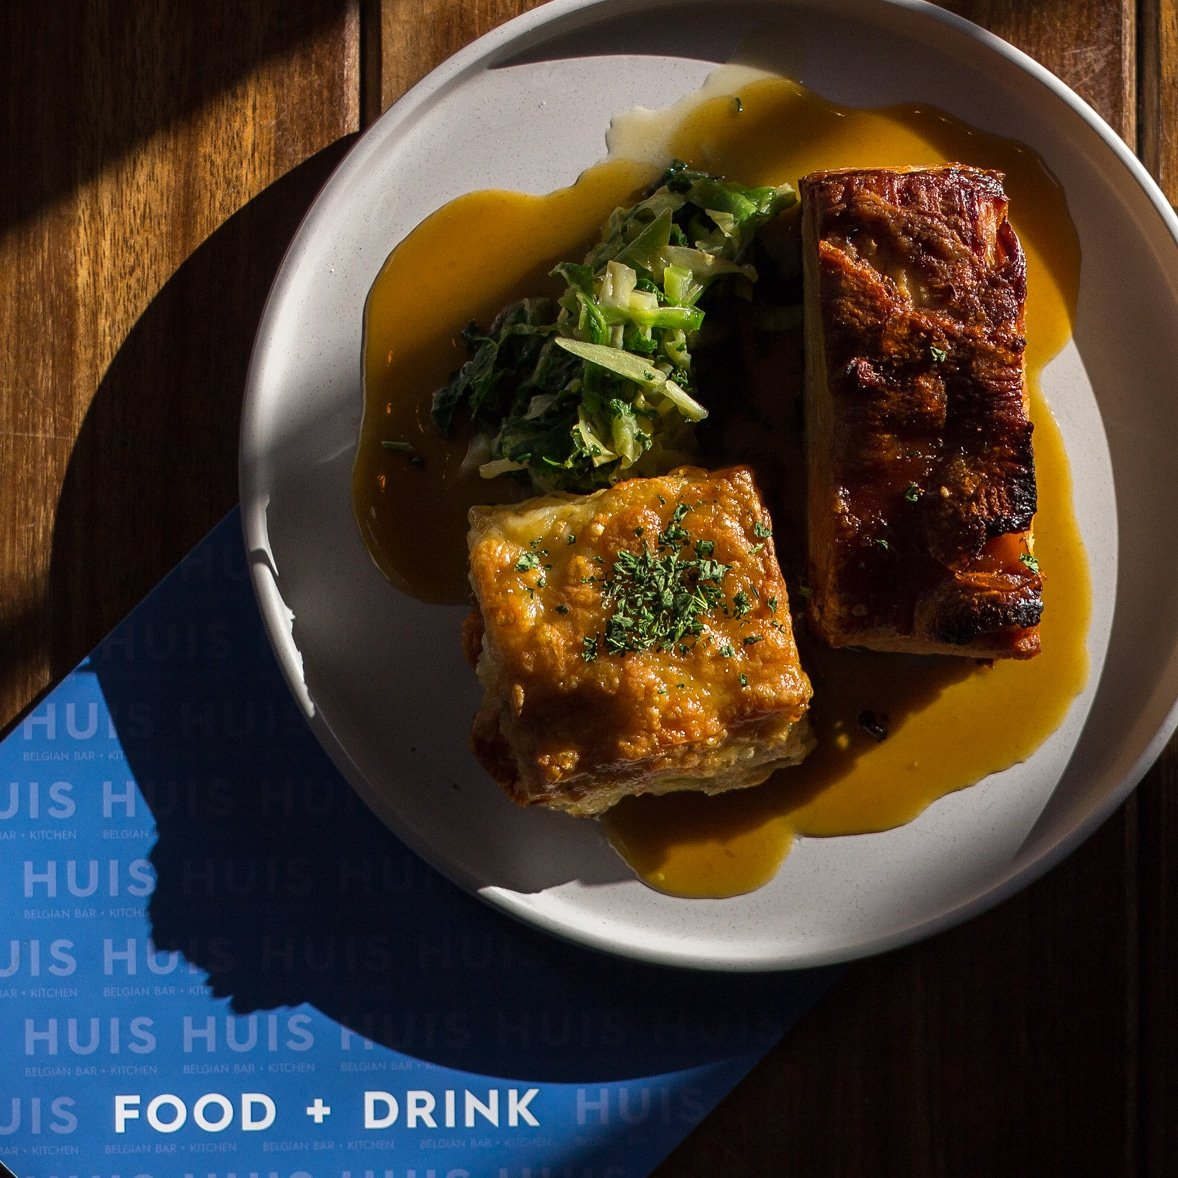 """UPGRADE YOUR ROAST? """"COOKED IN APPLE BEER"""" PORK BELLY WITH TRUFFLED POTATO DAUPHINOISE - SERVED DAILY @lindemansbeers #porkbelly #lindemansbeer #cookingwithbeer #eatingout #belgianfood #hampshire #portsmouth #southsea #huissouthsea"""